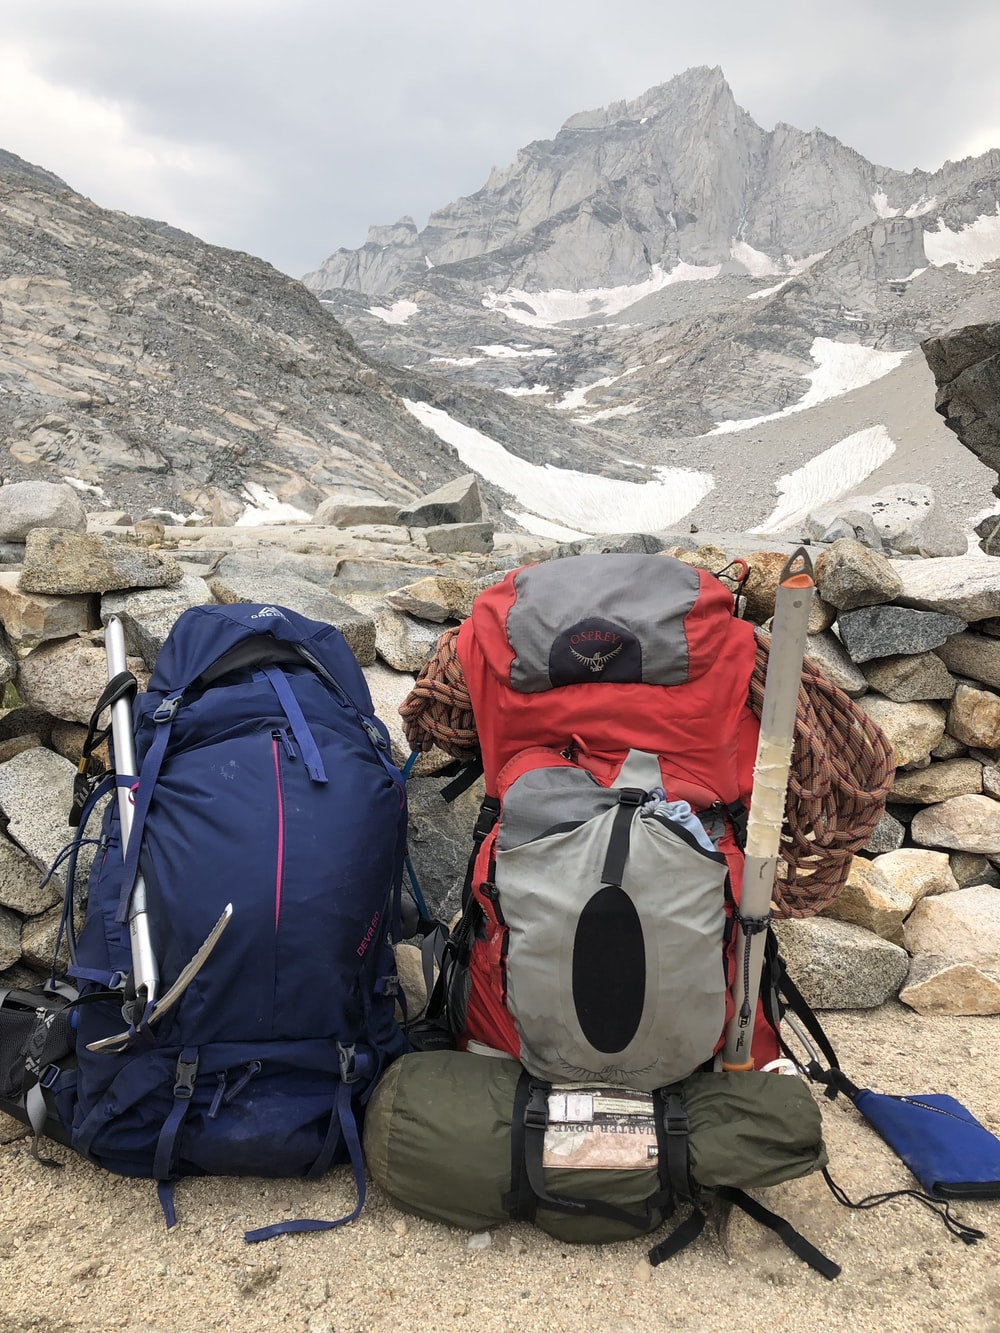 two blue and gray rucksack bags